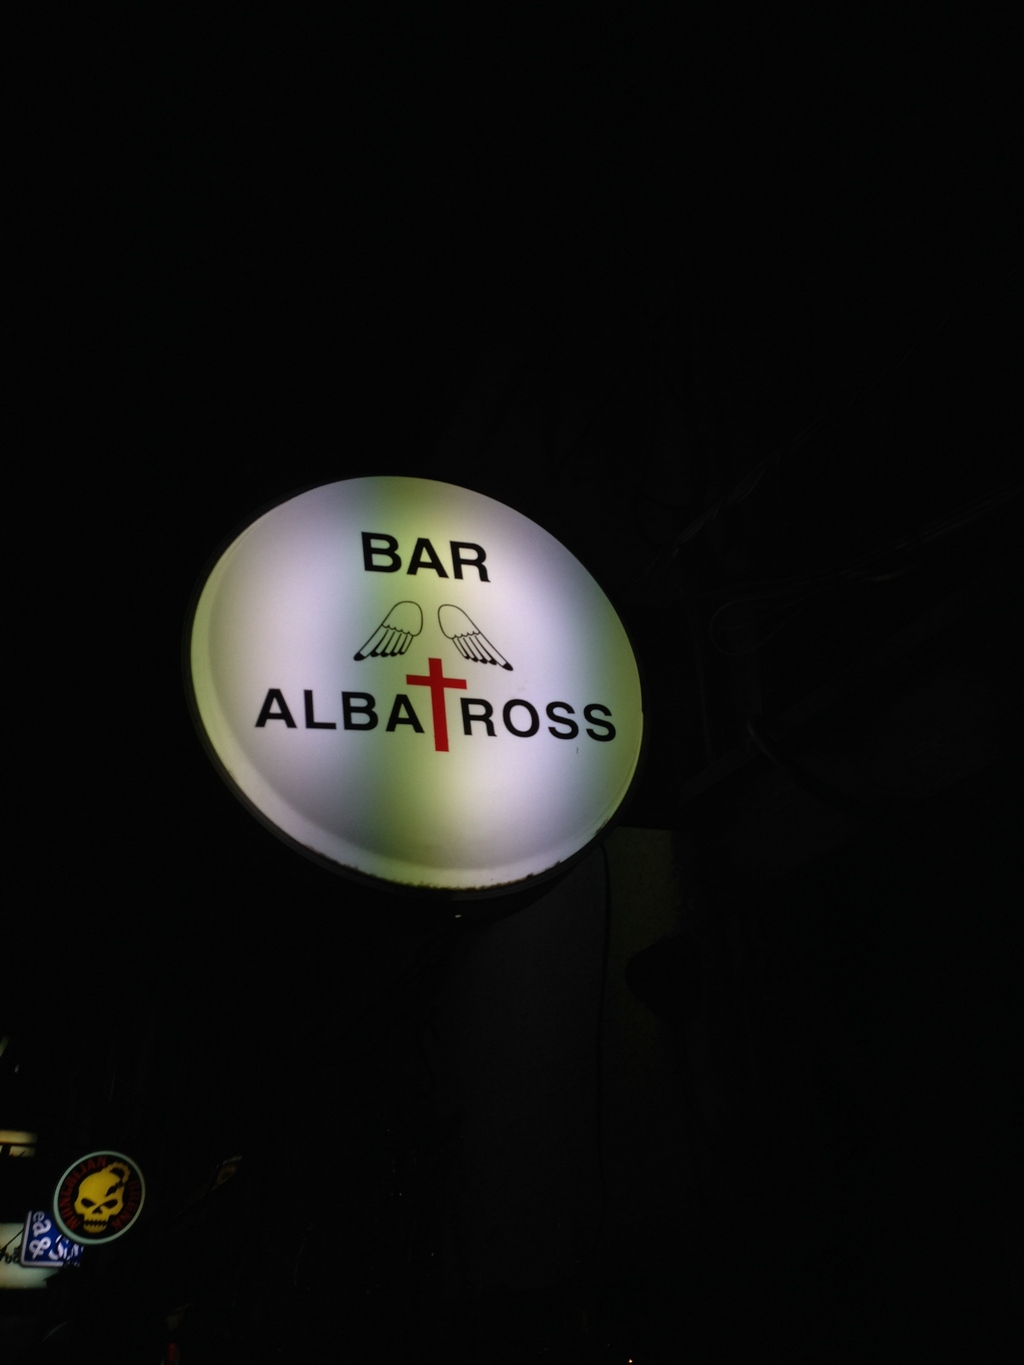 Albatross bar